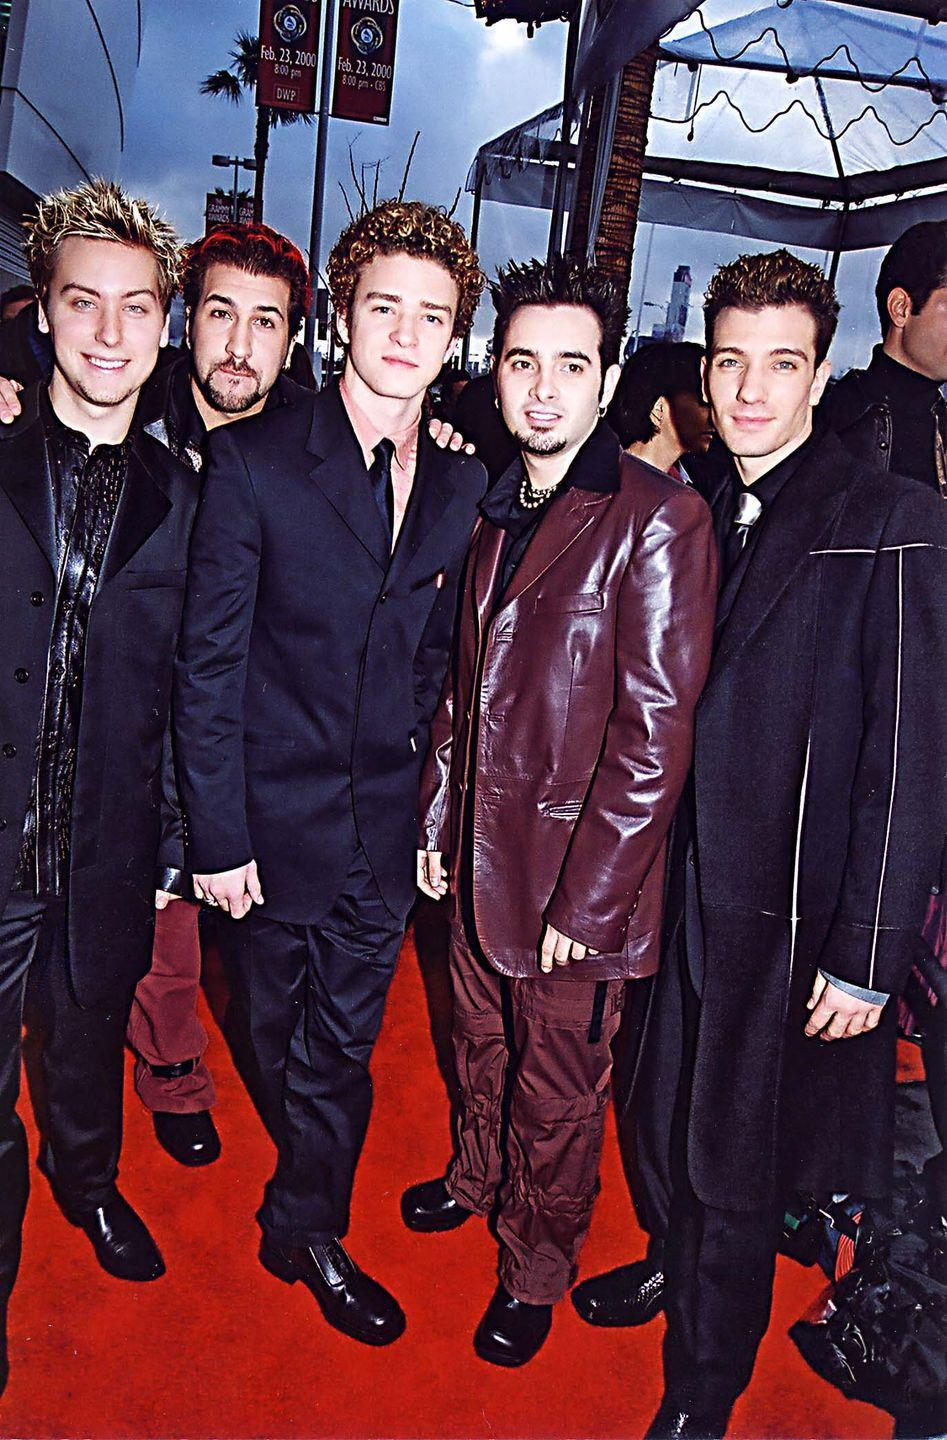 <p>The boys were looking <em>gooood </em>at the Grammys in 2000. So much black, so much leather, and So. Much. Hair. Gel. </p>